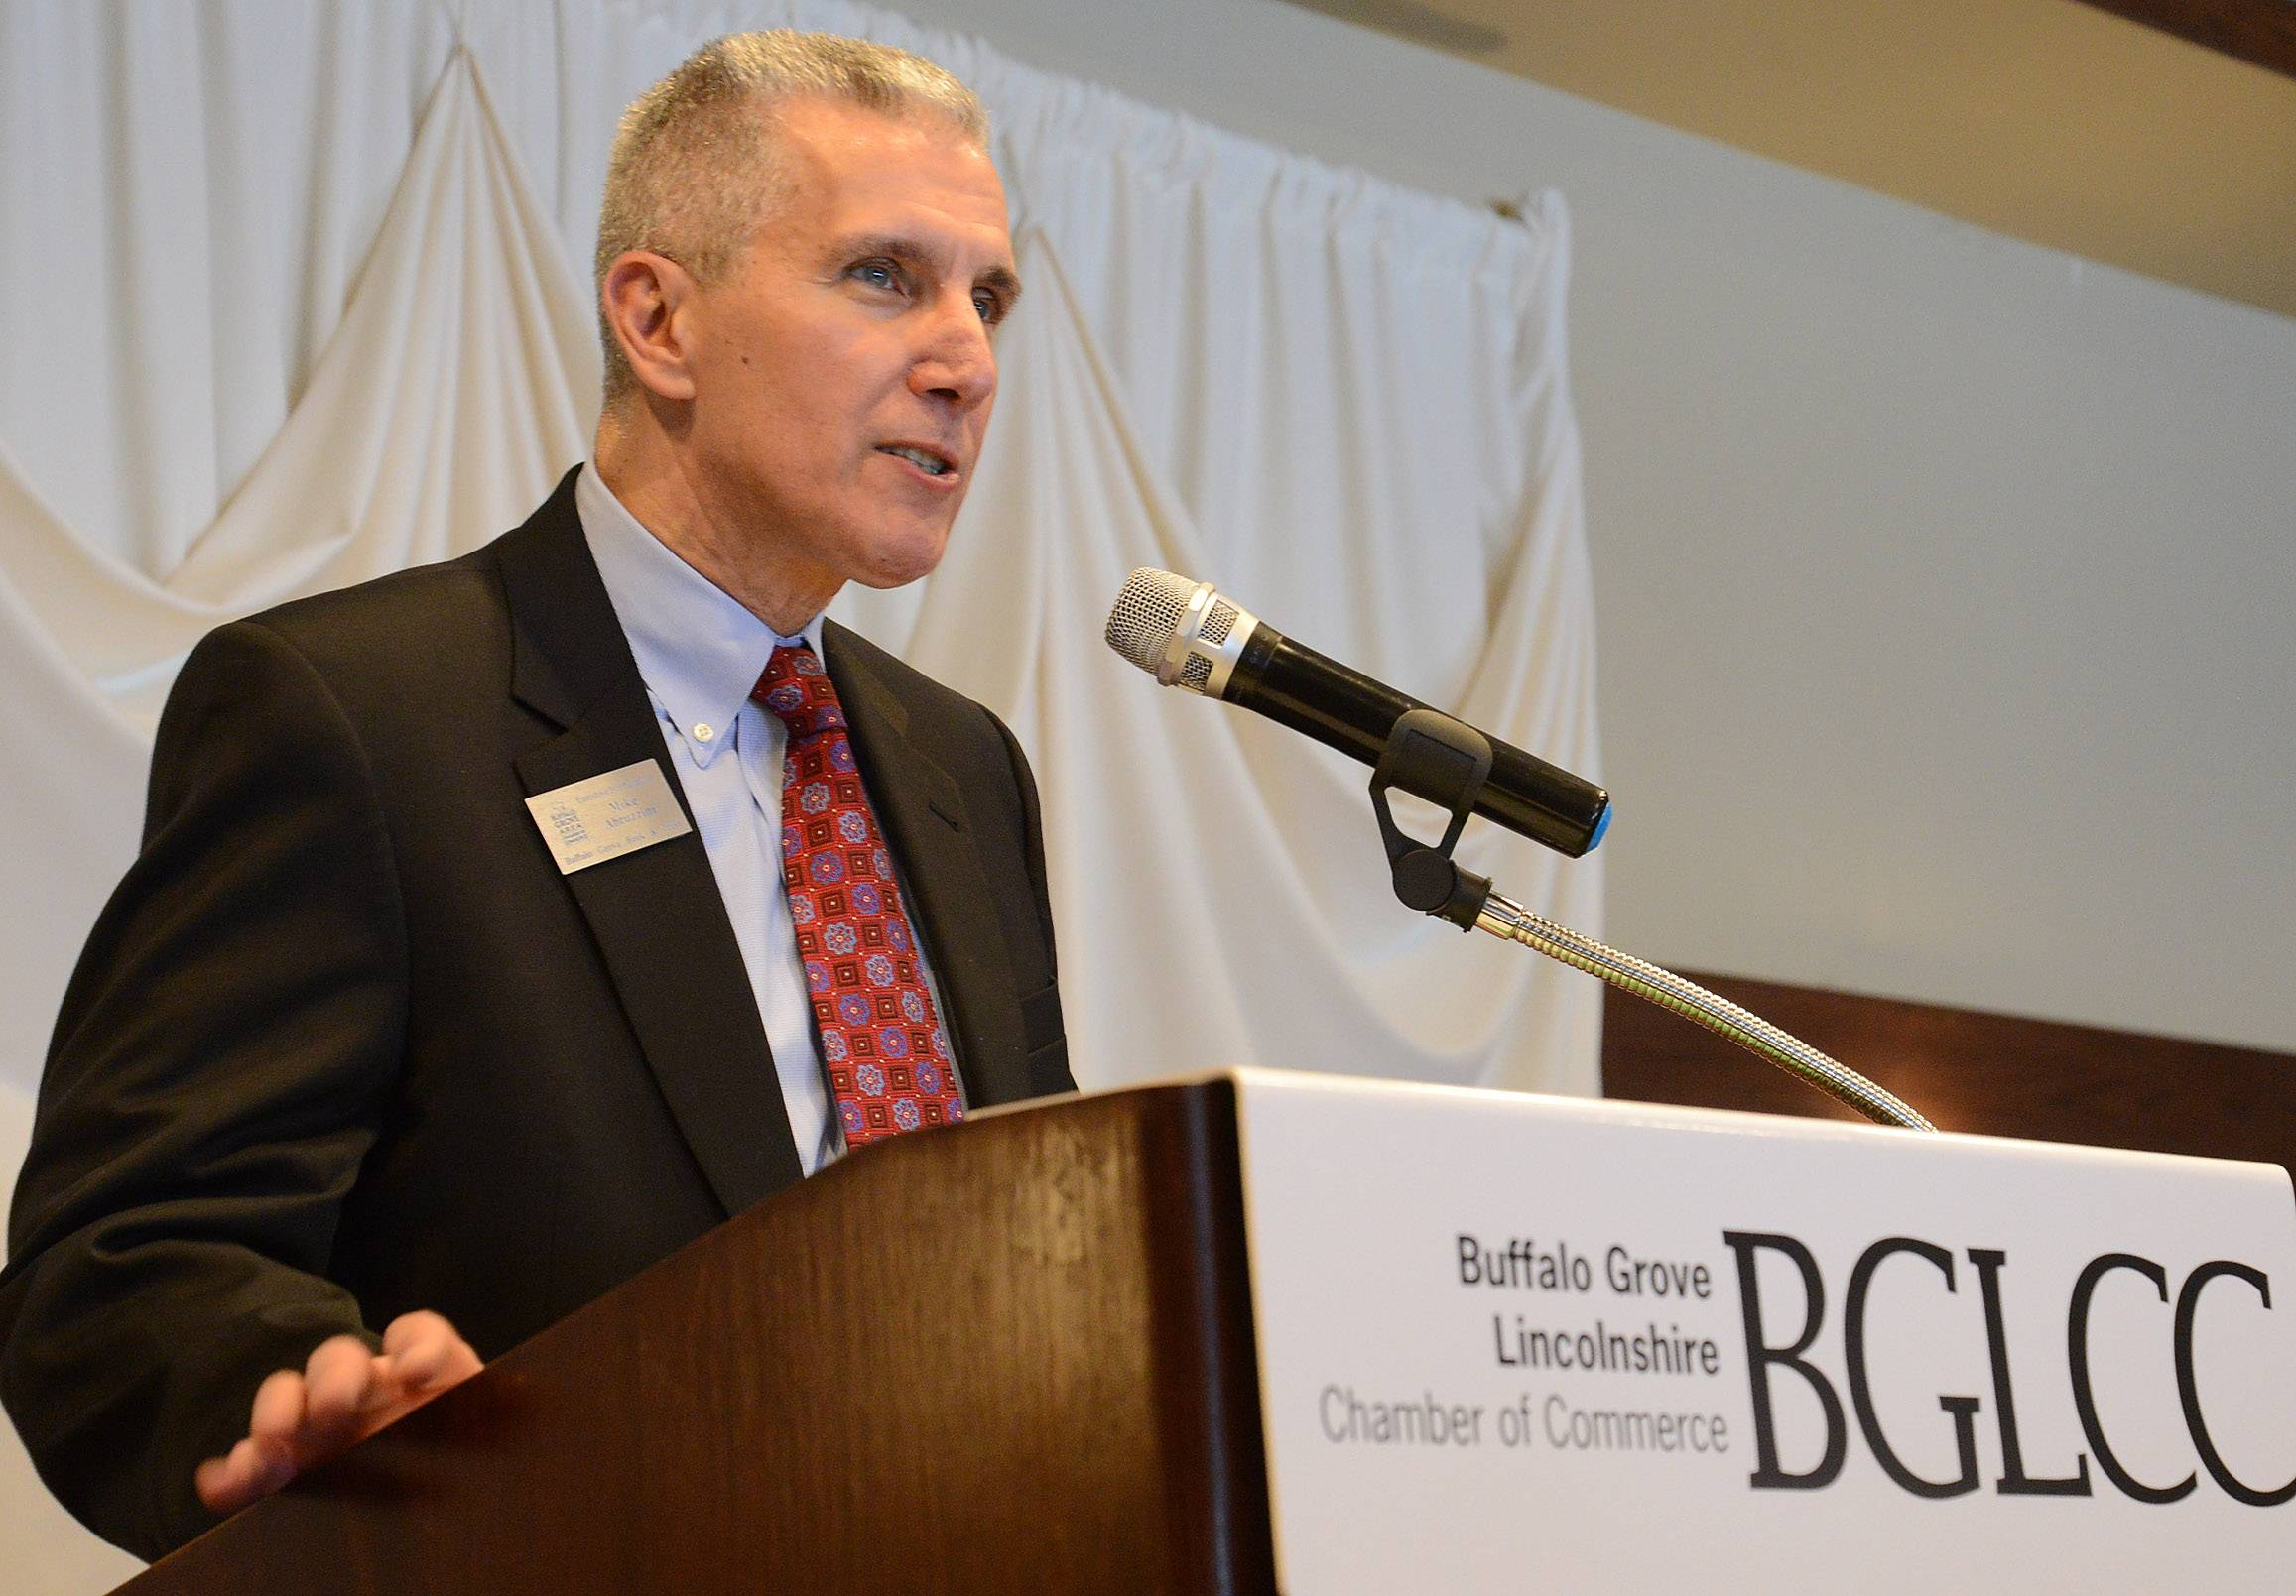 Michael Abruzzini, president of the Buffalo Grove Lincolnshire Chamber of Commerce and vice president of the Buffalo Grove Bank and Trust, will chair a new Buffalo Grove Economic Development Strategic Plan Steering Committee.